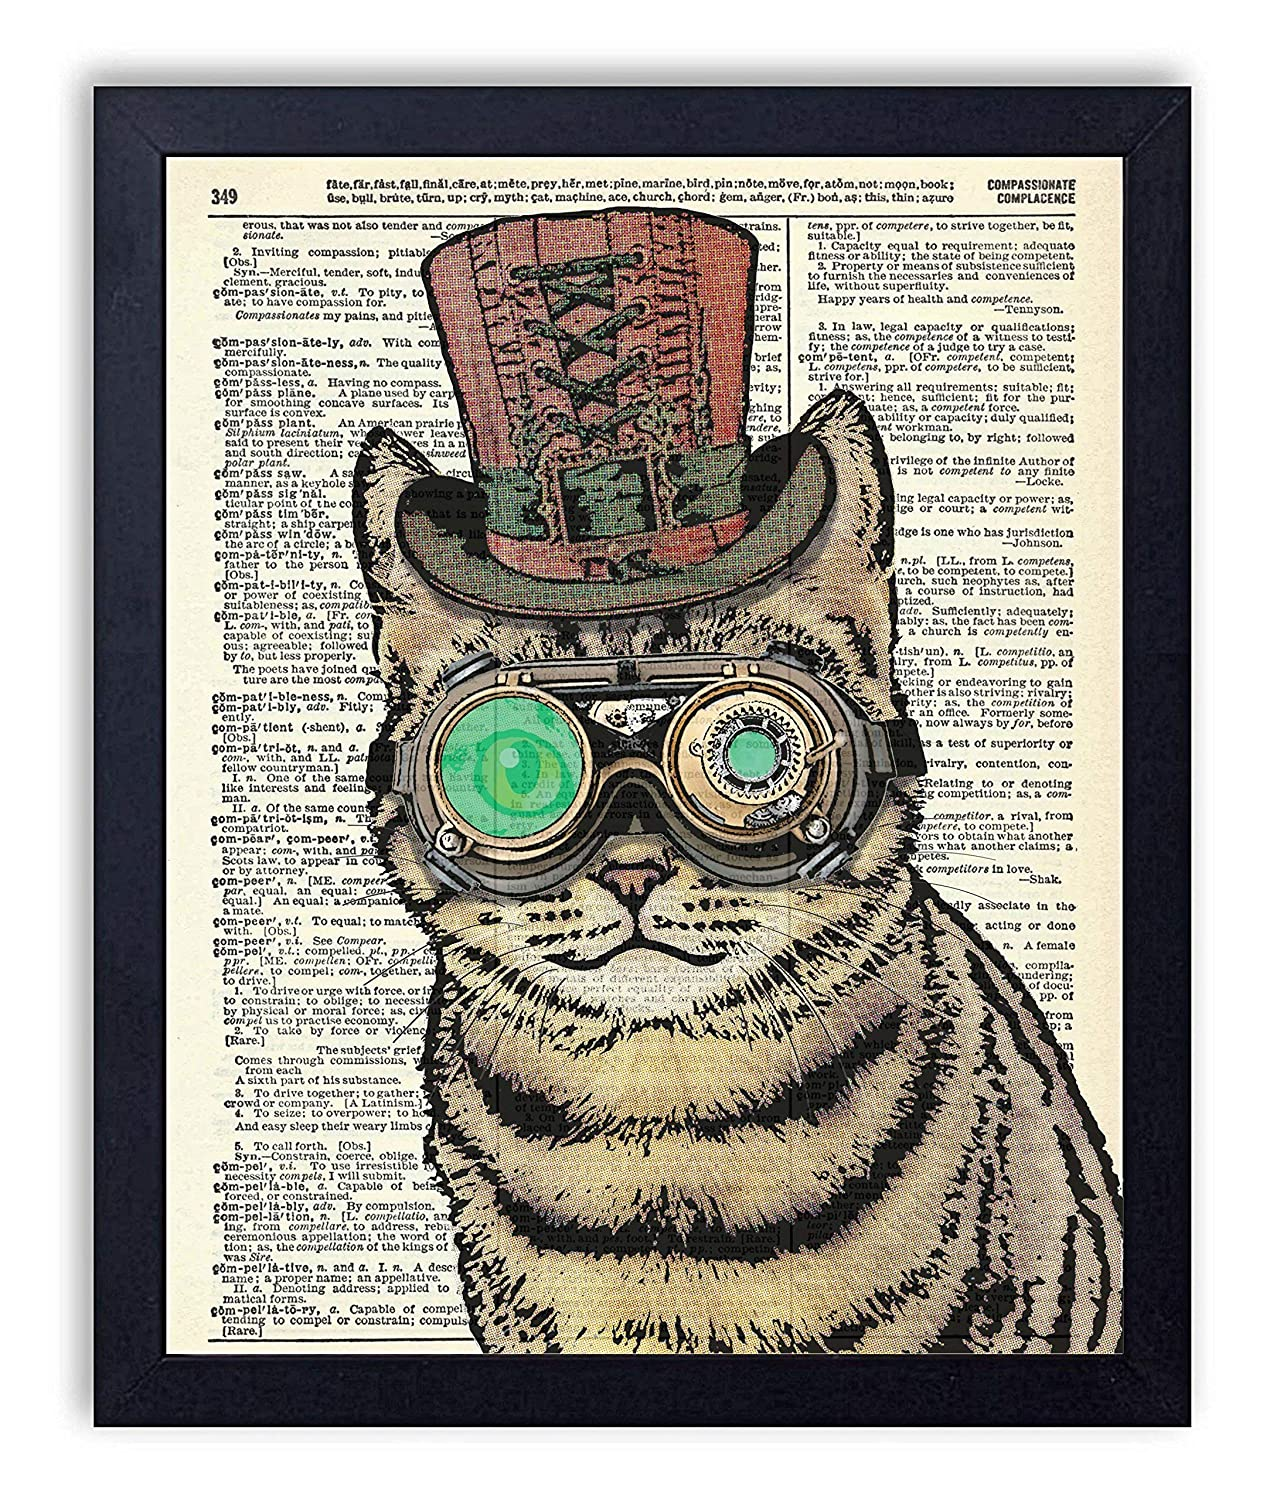 Edison Steampunk Cat Upcycled Wall Art Vintage Dictionary Art Print 8x10 inches / 20.32 x 25.4 cm Unframed